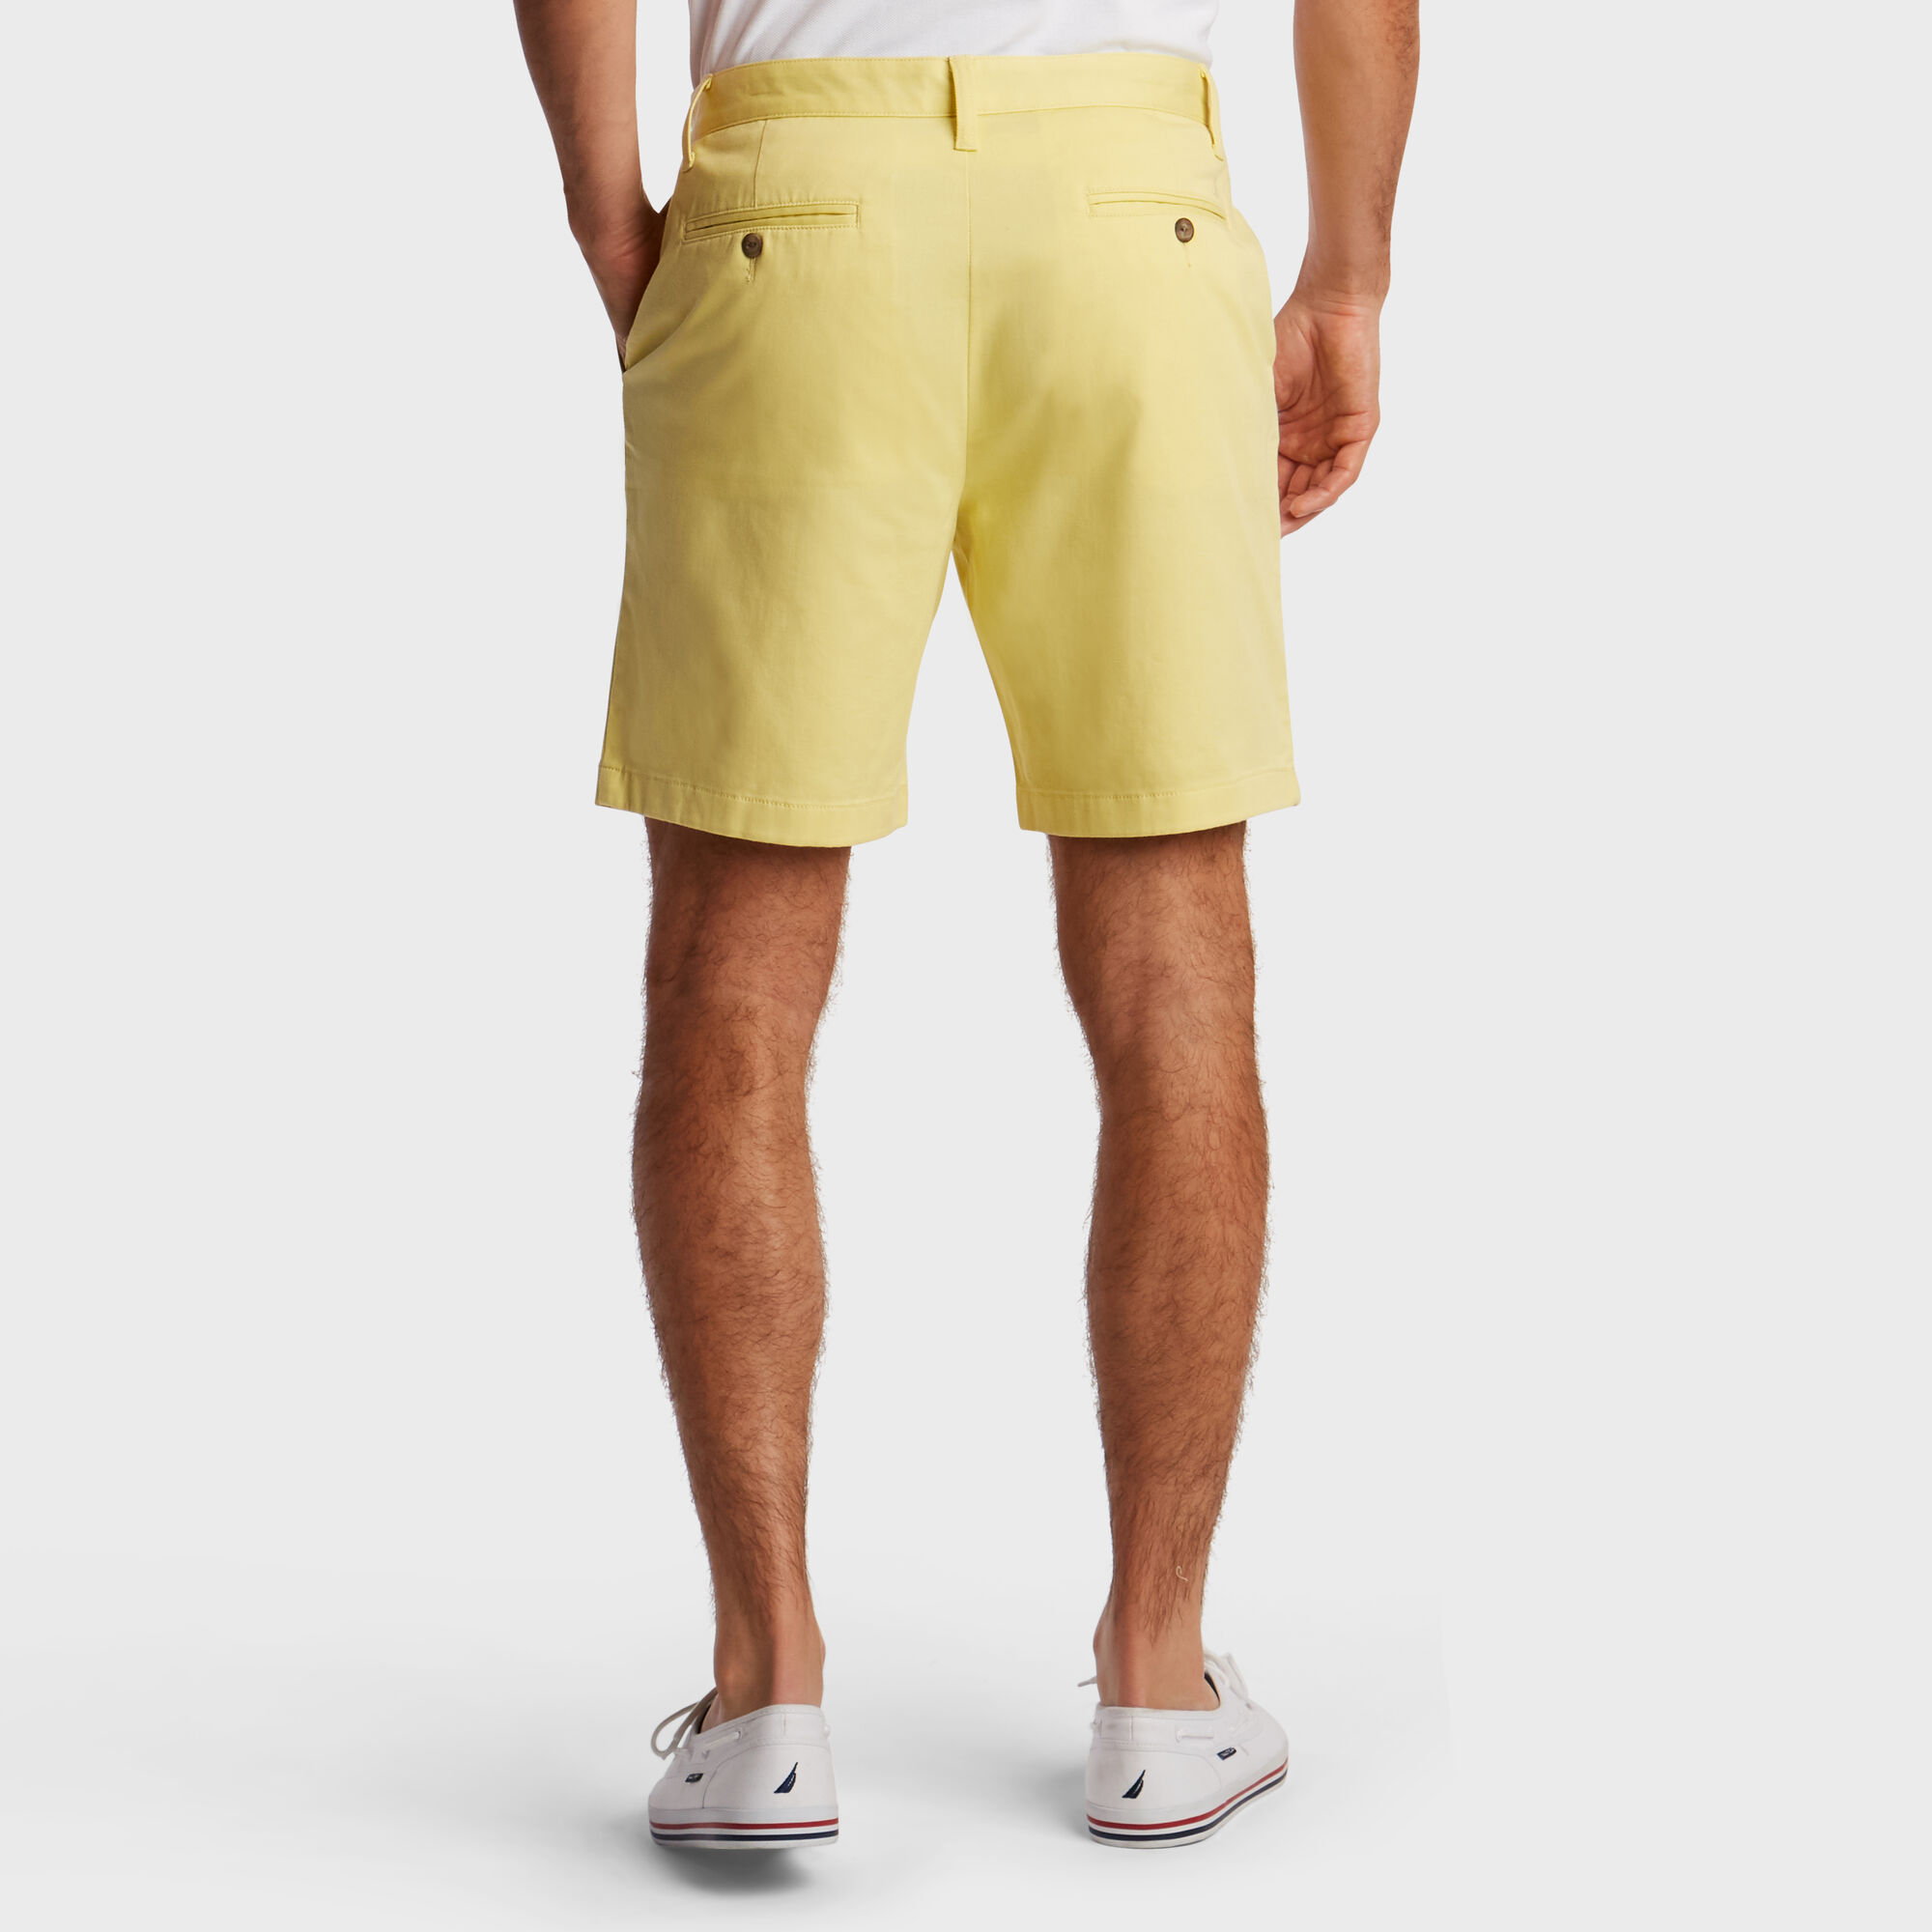 Nautica-Mens-8-5-034-Classic-Fit-Deck-Short-With-Stretch thumbnail 16